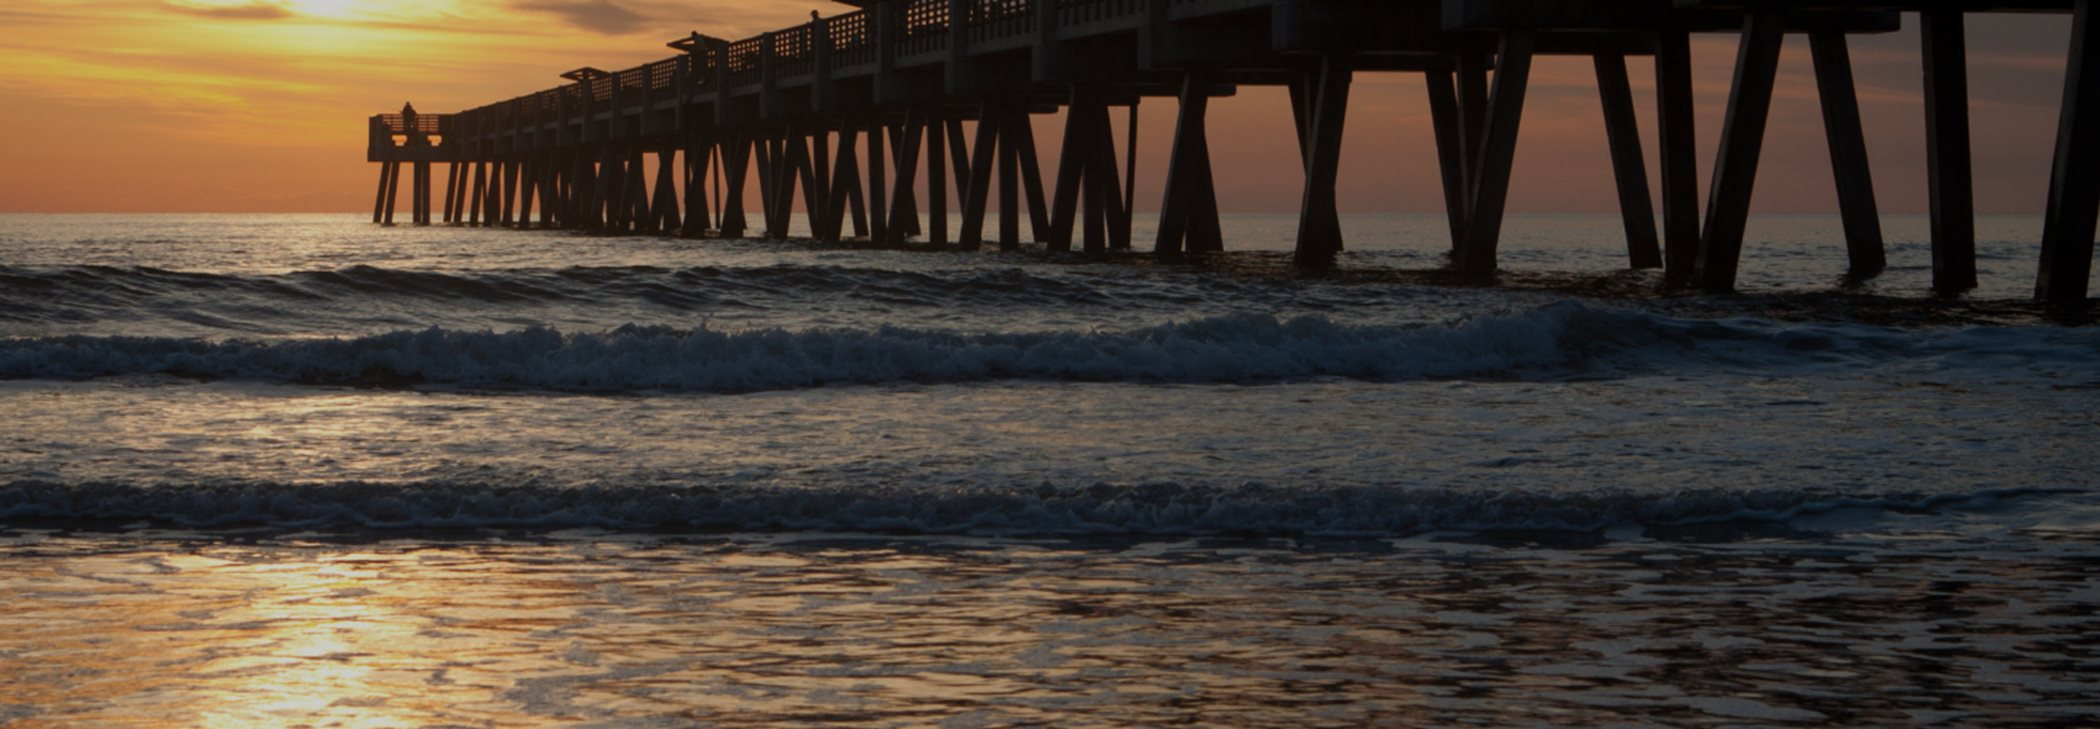 Jacksonville - St. Augustine Beach and Pier View